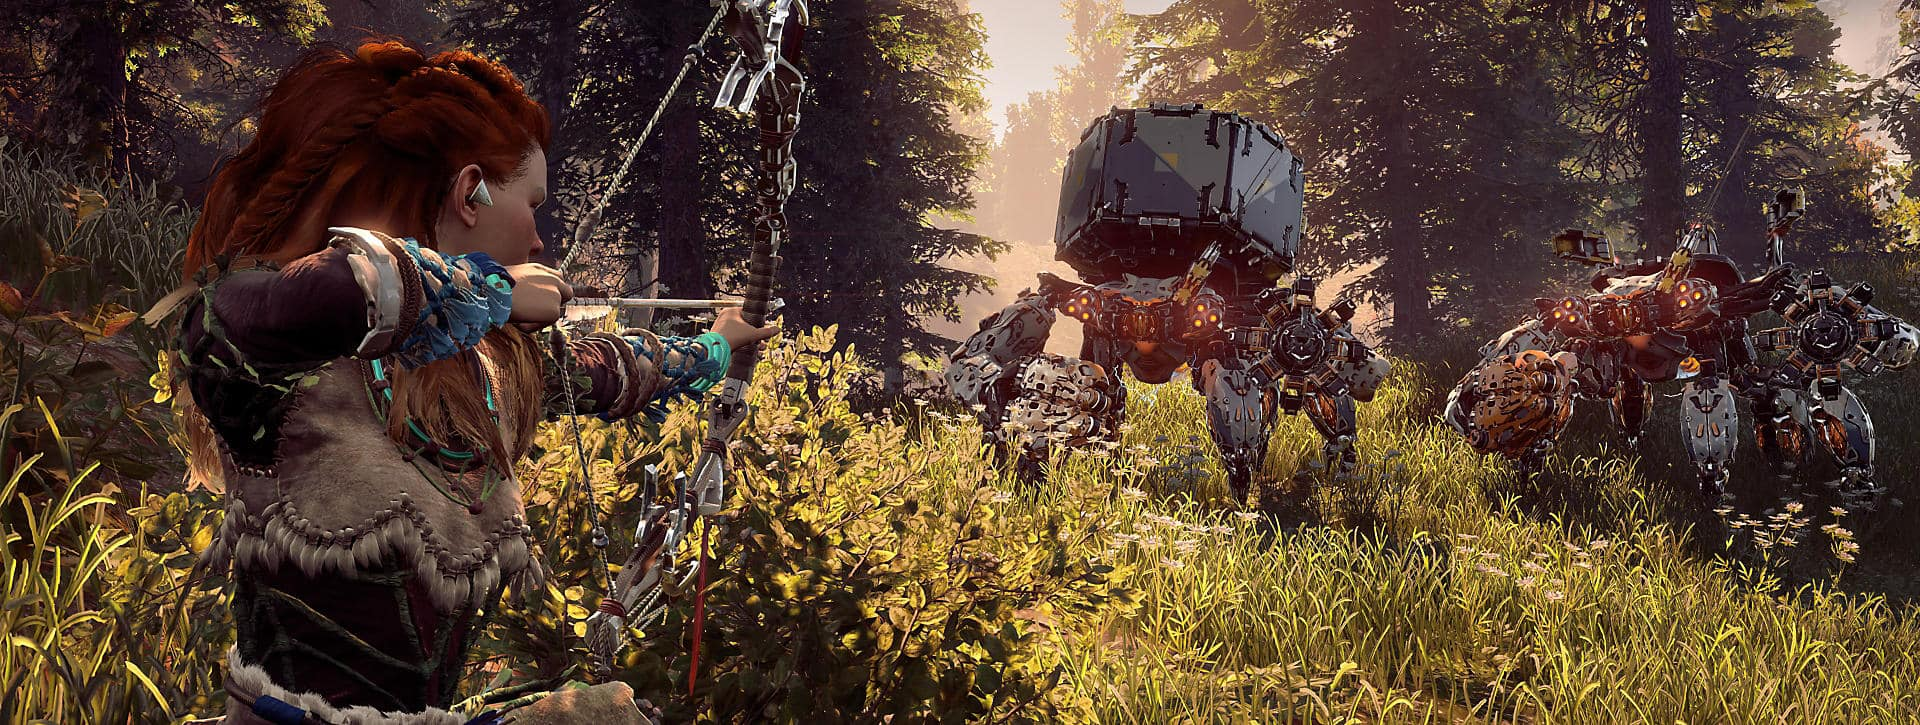 Horizon: Zero Dawn behauptet sich gegen Zelda: Breath of the Wild